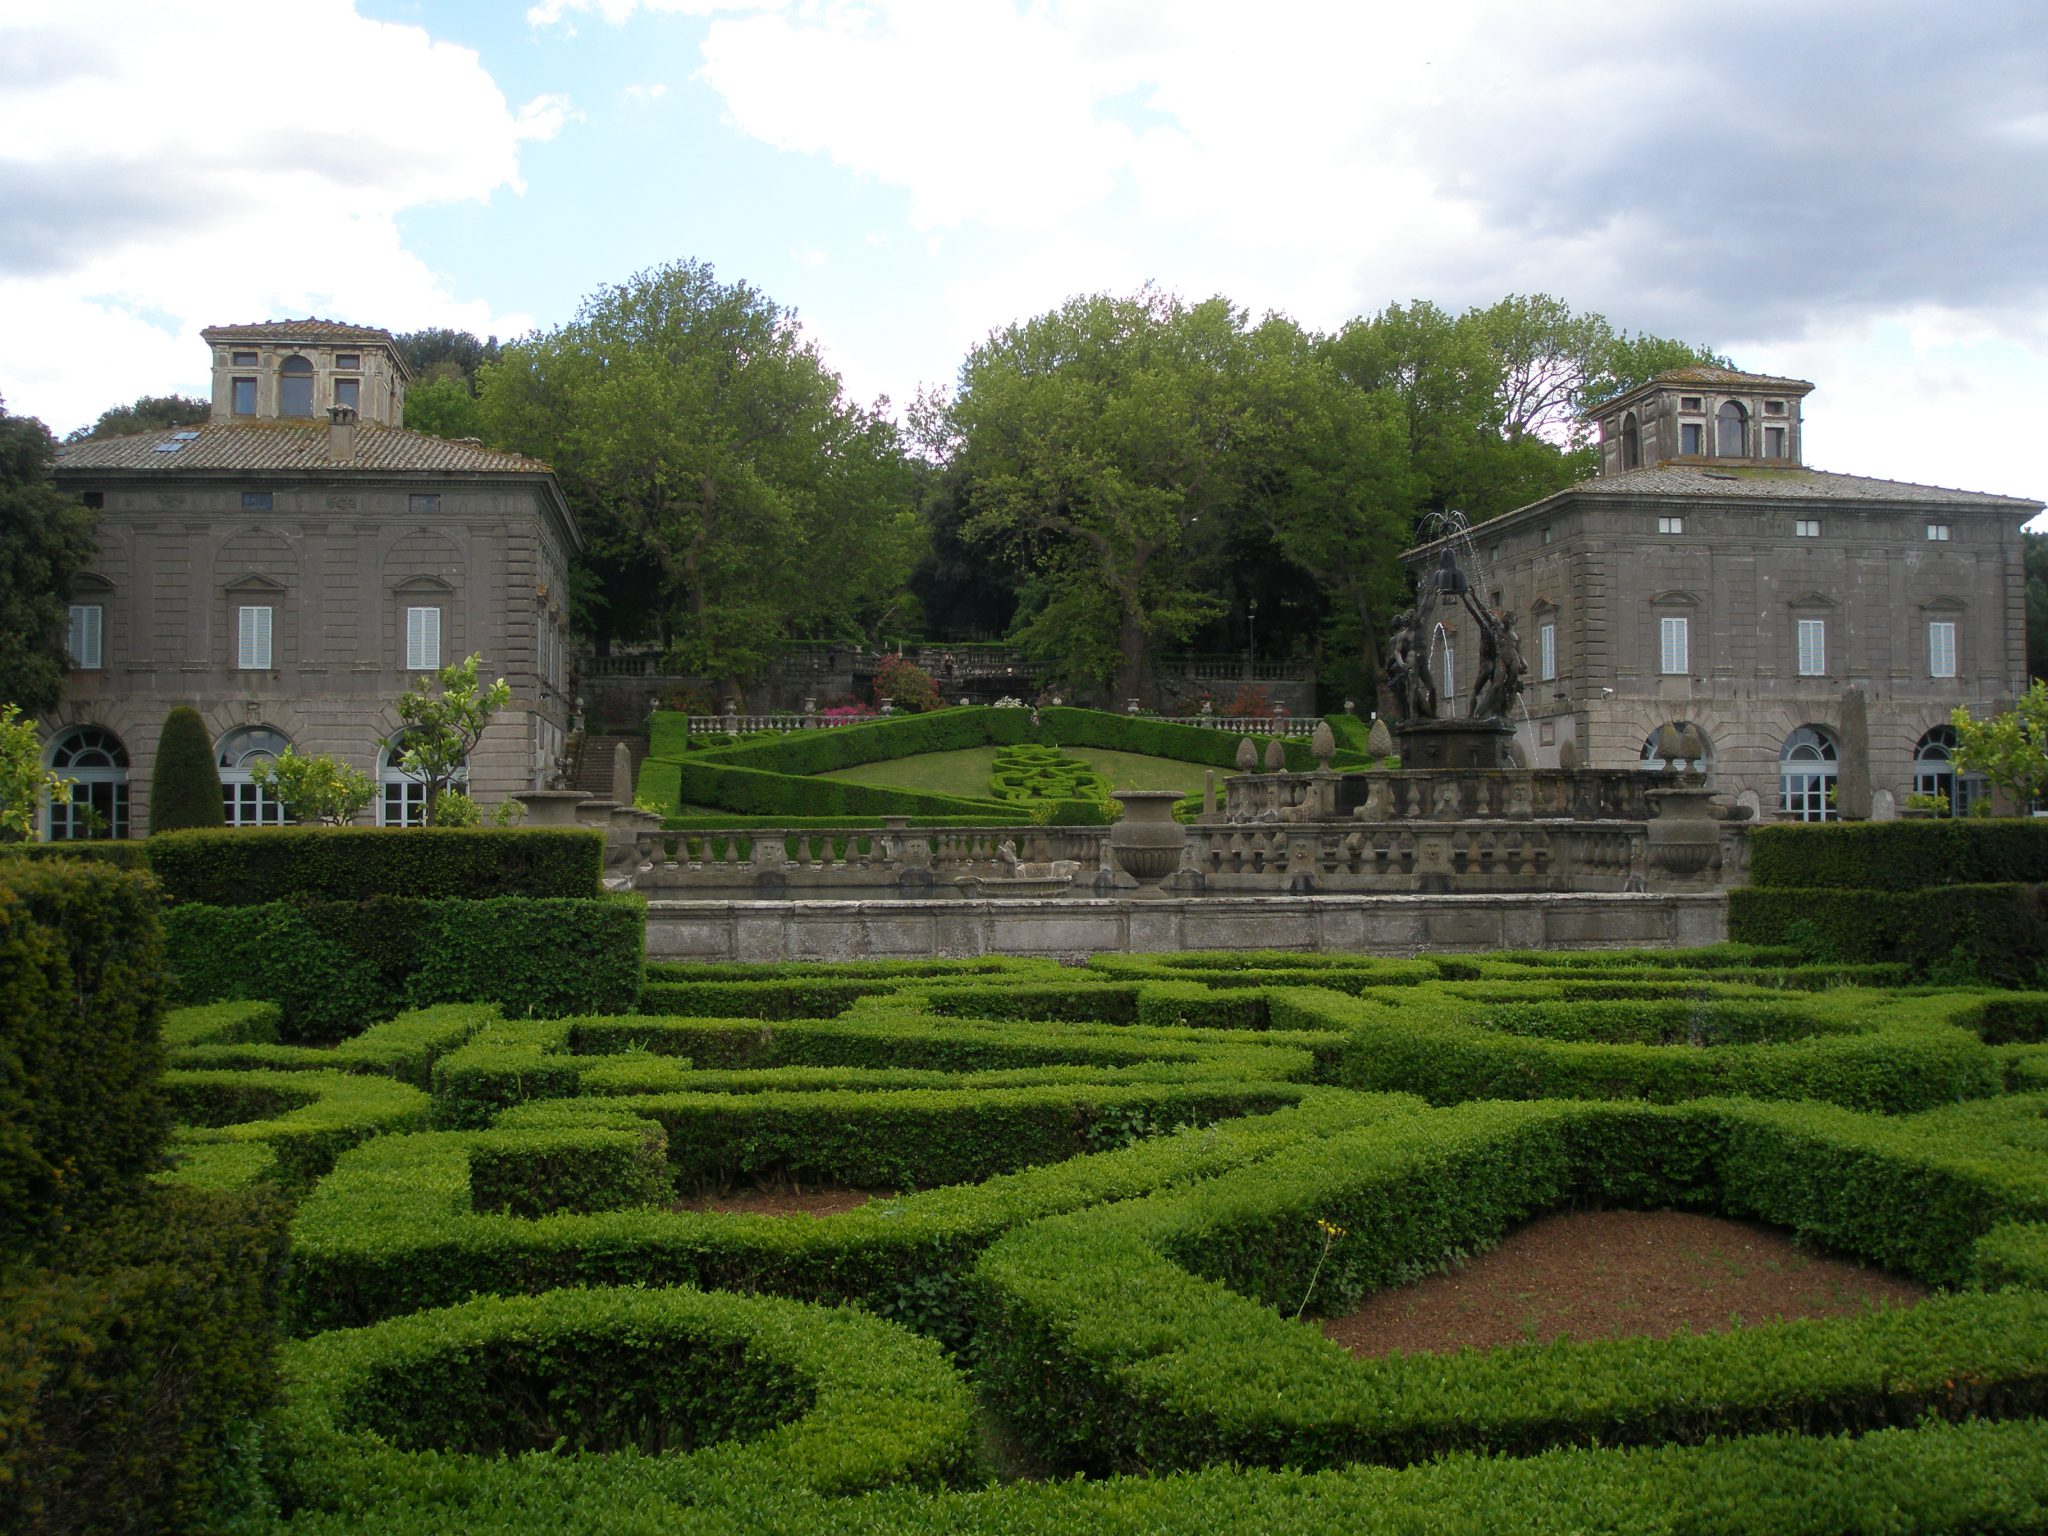 Palazzina Montalto (on the left) and Palazzina Gambara (on the right), as viewed from within the boxwood parterres that surround the Fountain of the Moors.